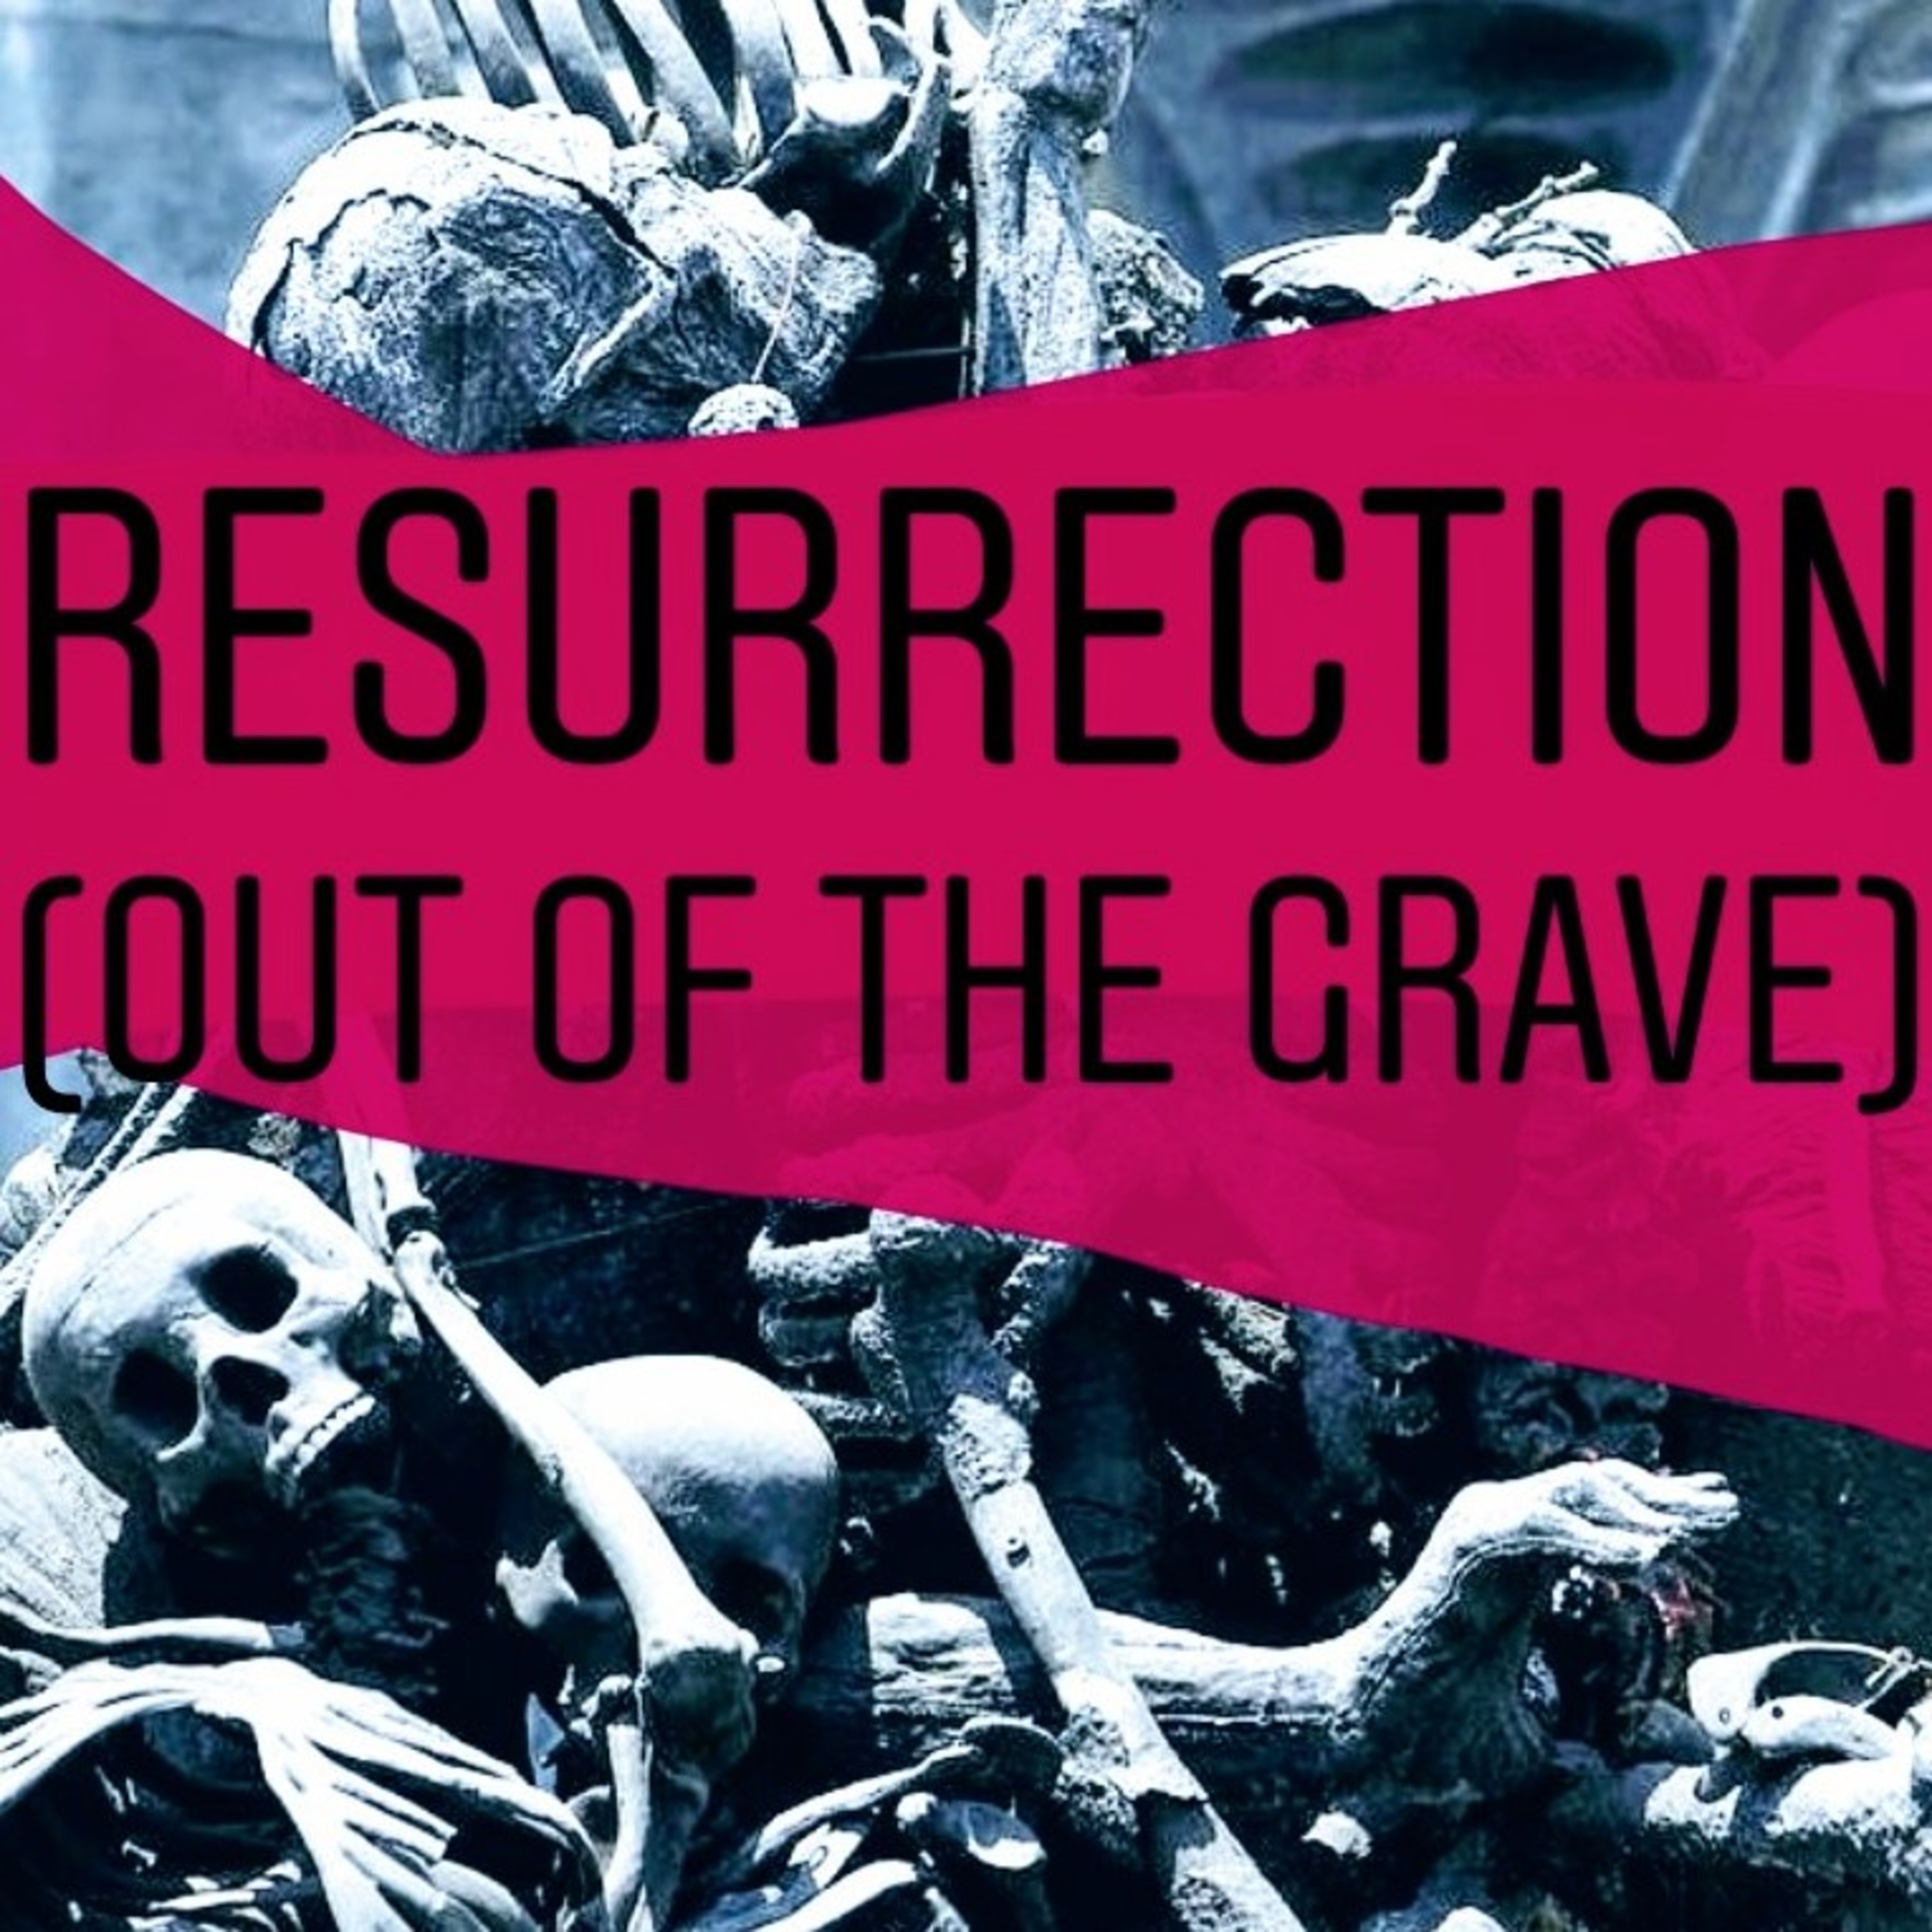 Rise X Up 2 - Resurrection (Out of the Grave) - Josh Hatcher | Ironmill | Manlihood